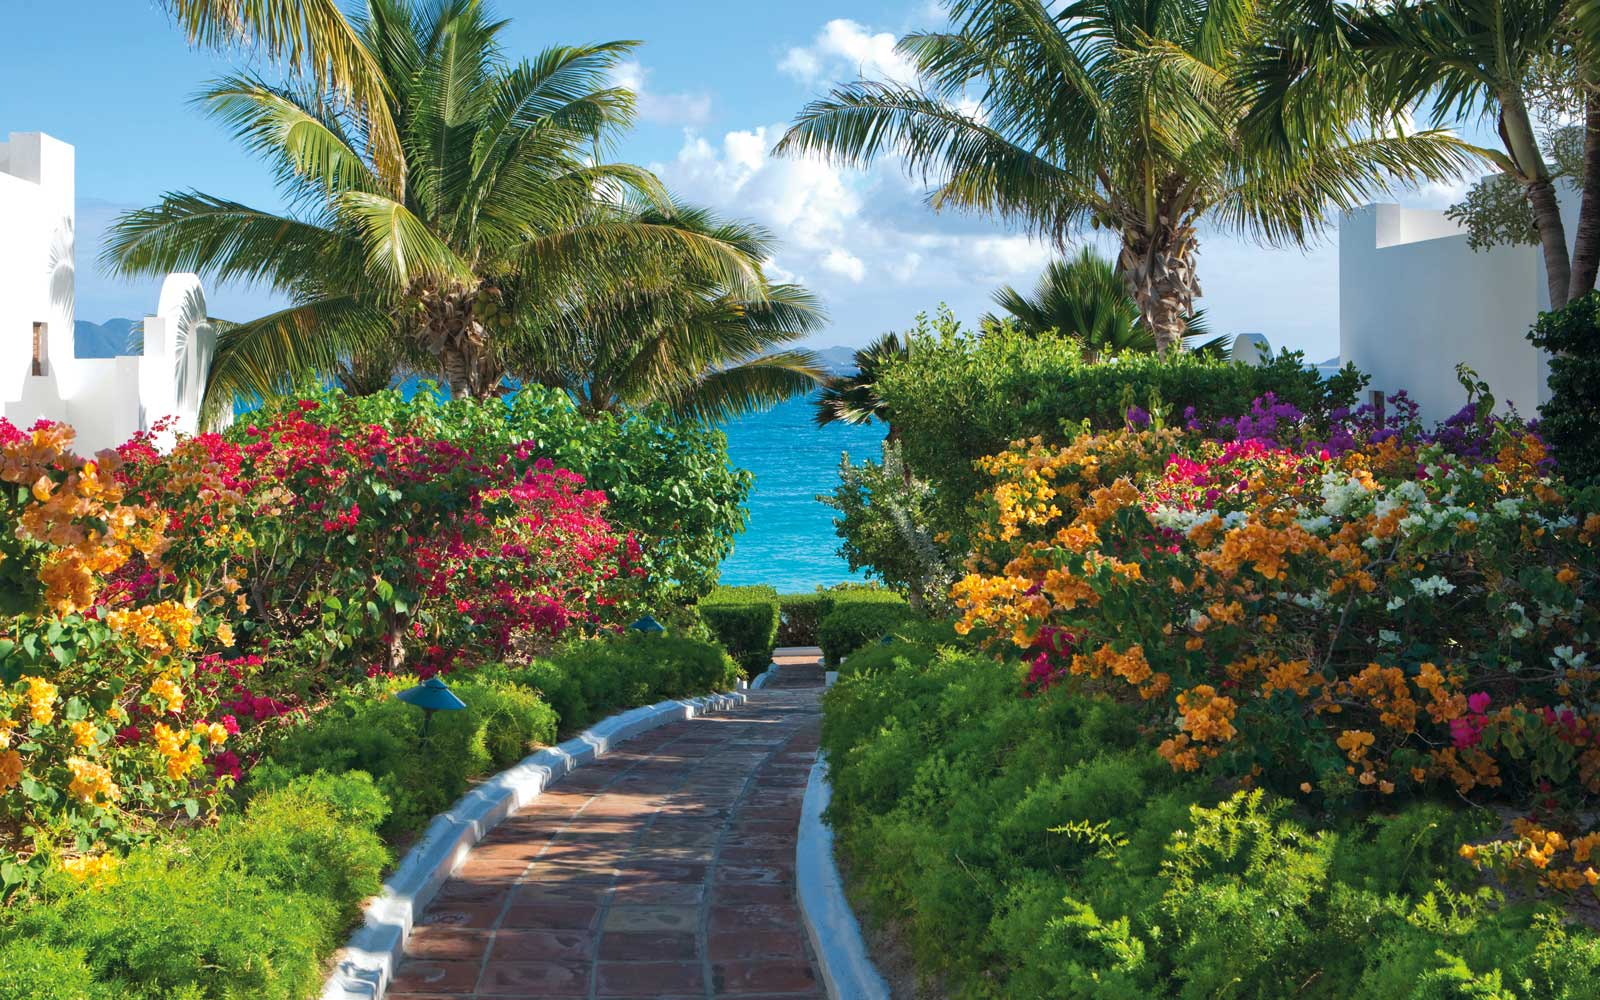 Flower lined path at the Belmond Cap Juluca resort in Anguilla